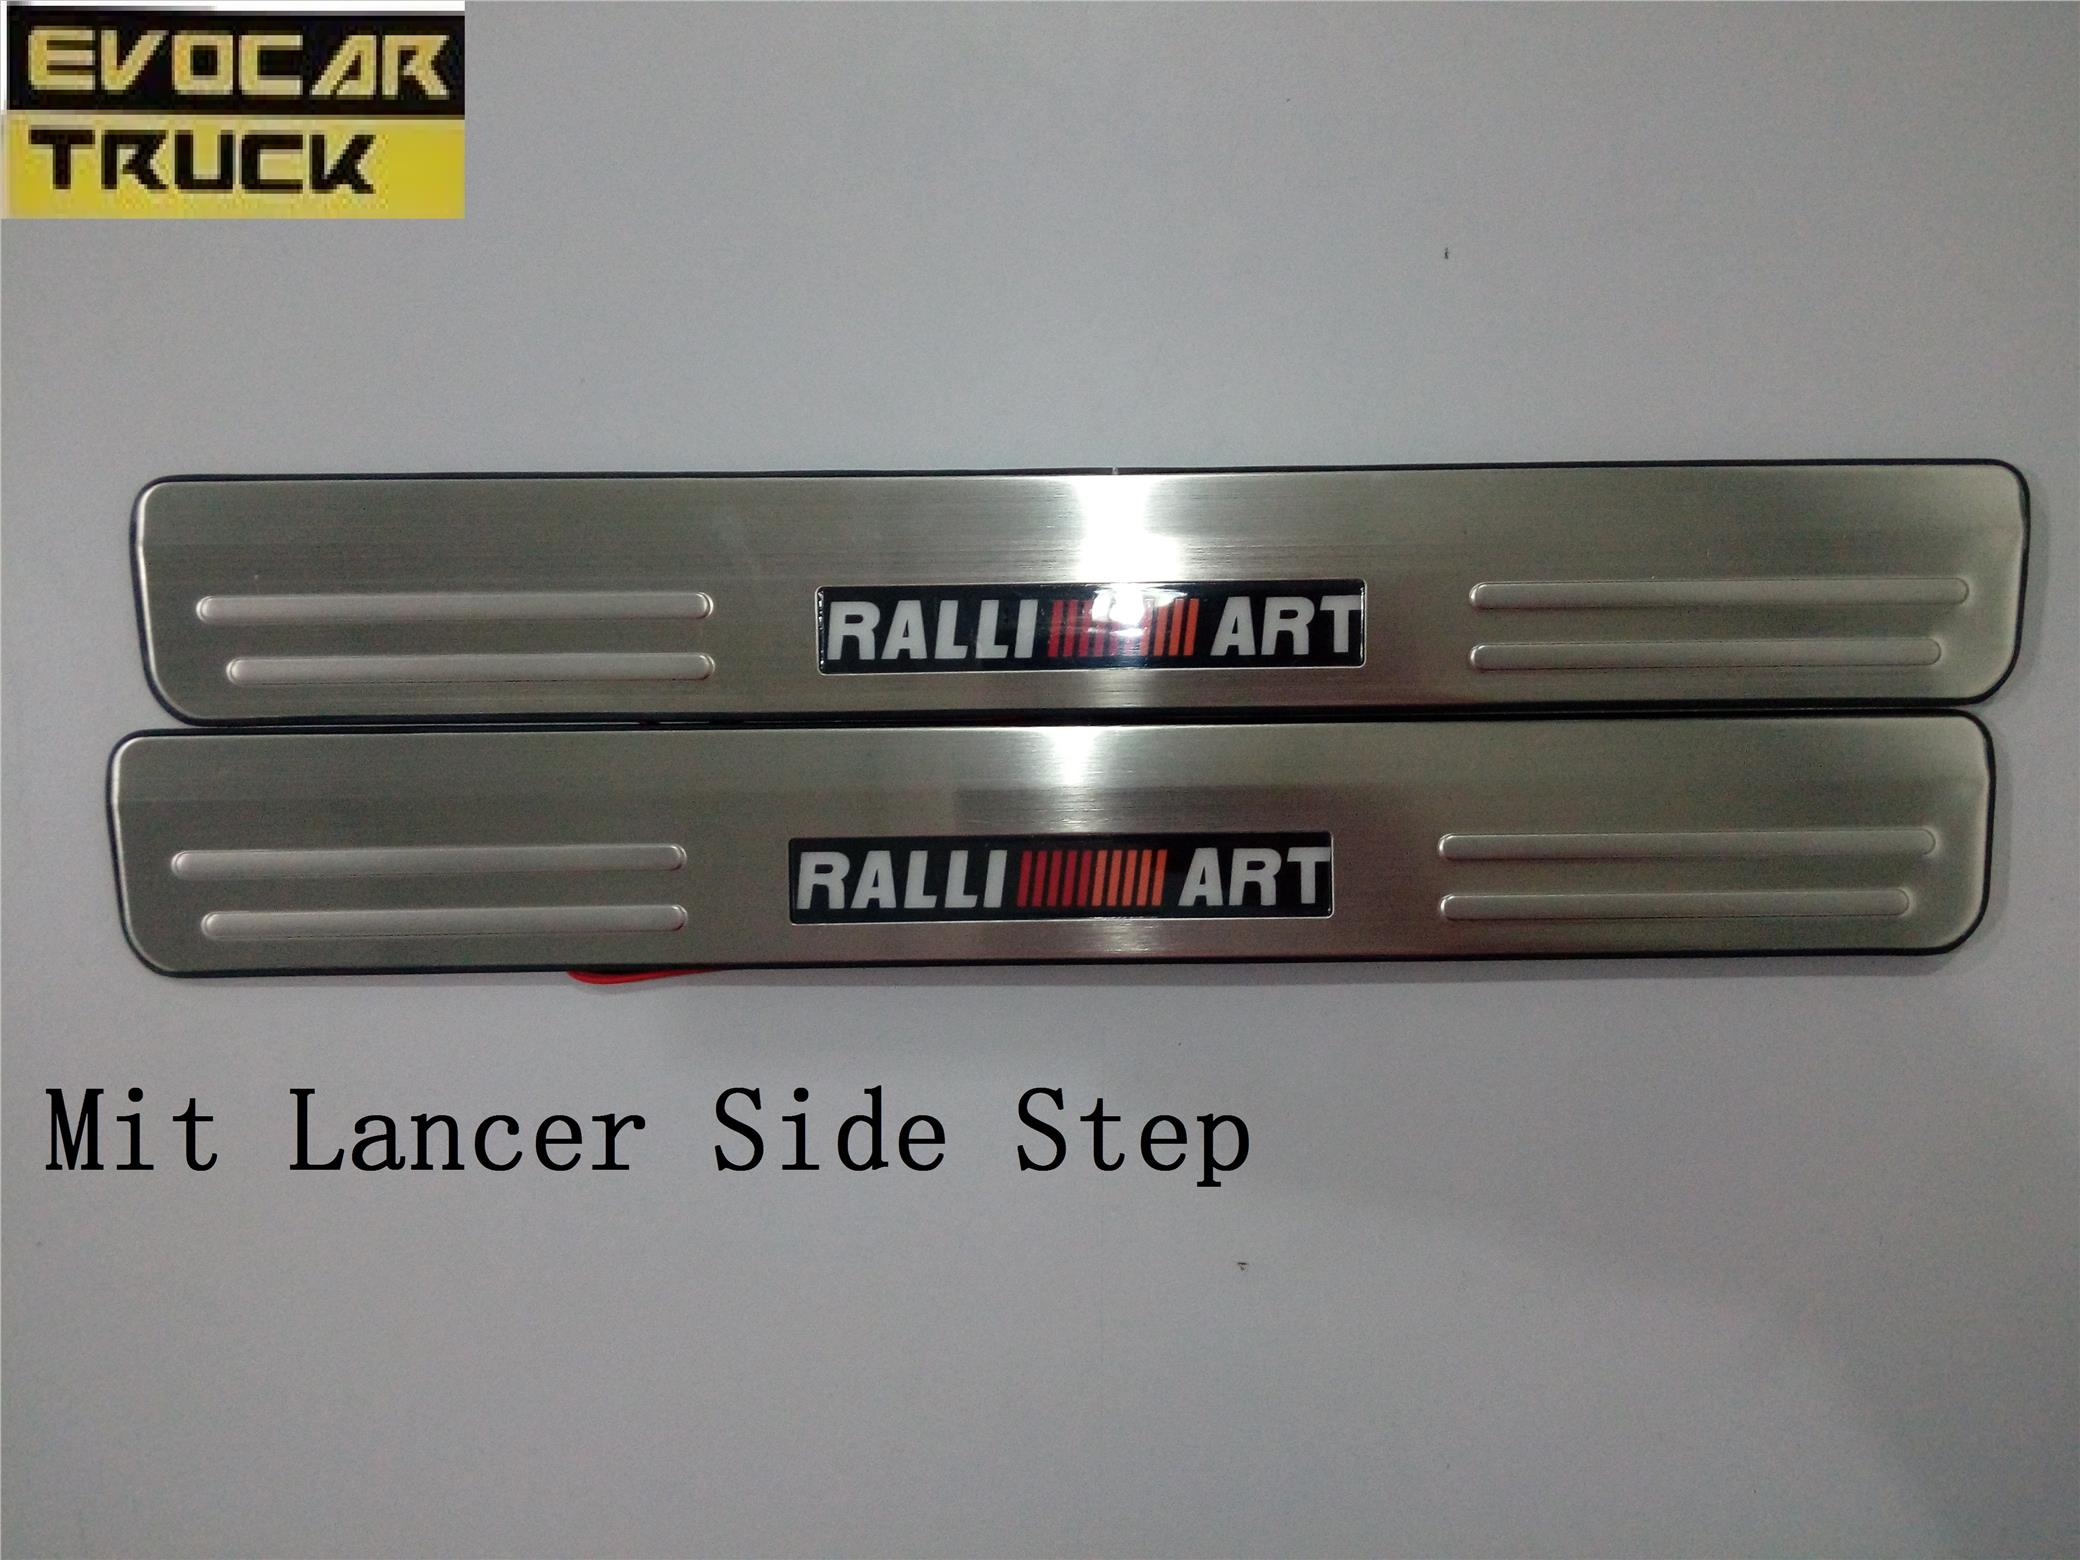 RALLY ART LED DOOR SIDE STEP